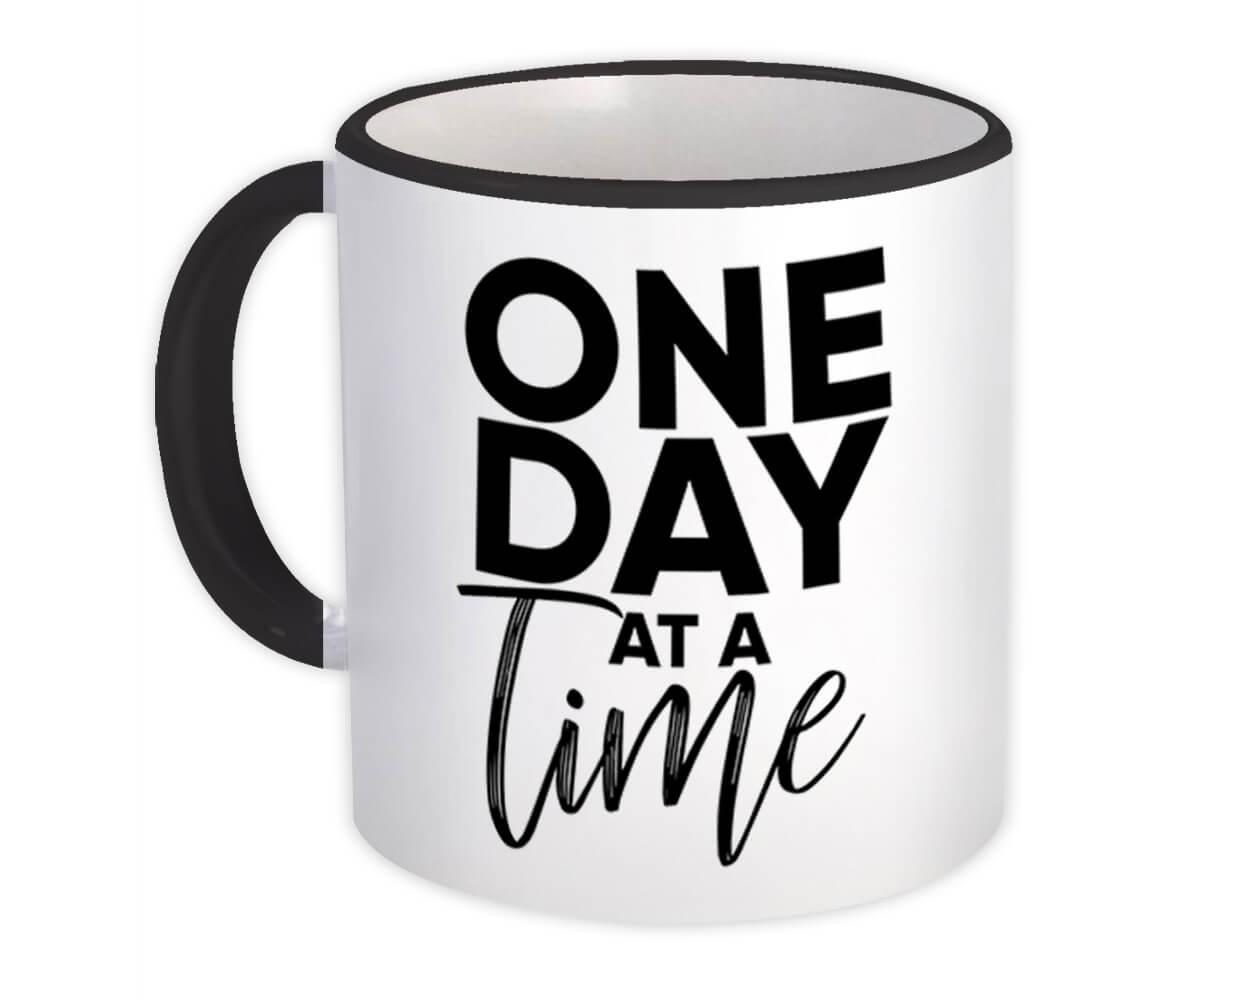 One day at a time : Gift Mug Motivational Quote Inspire